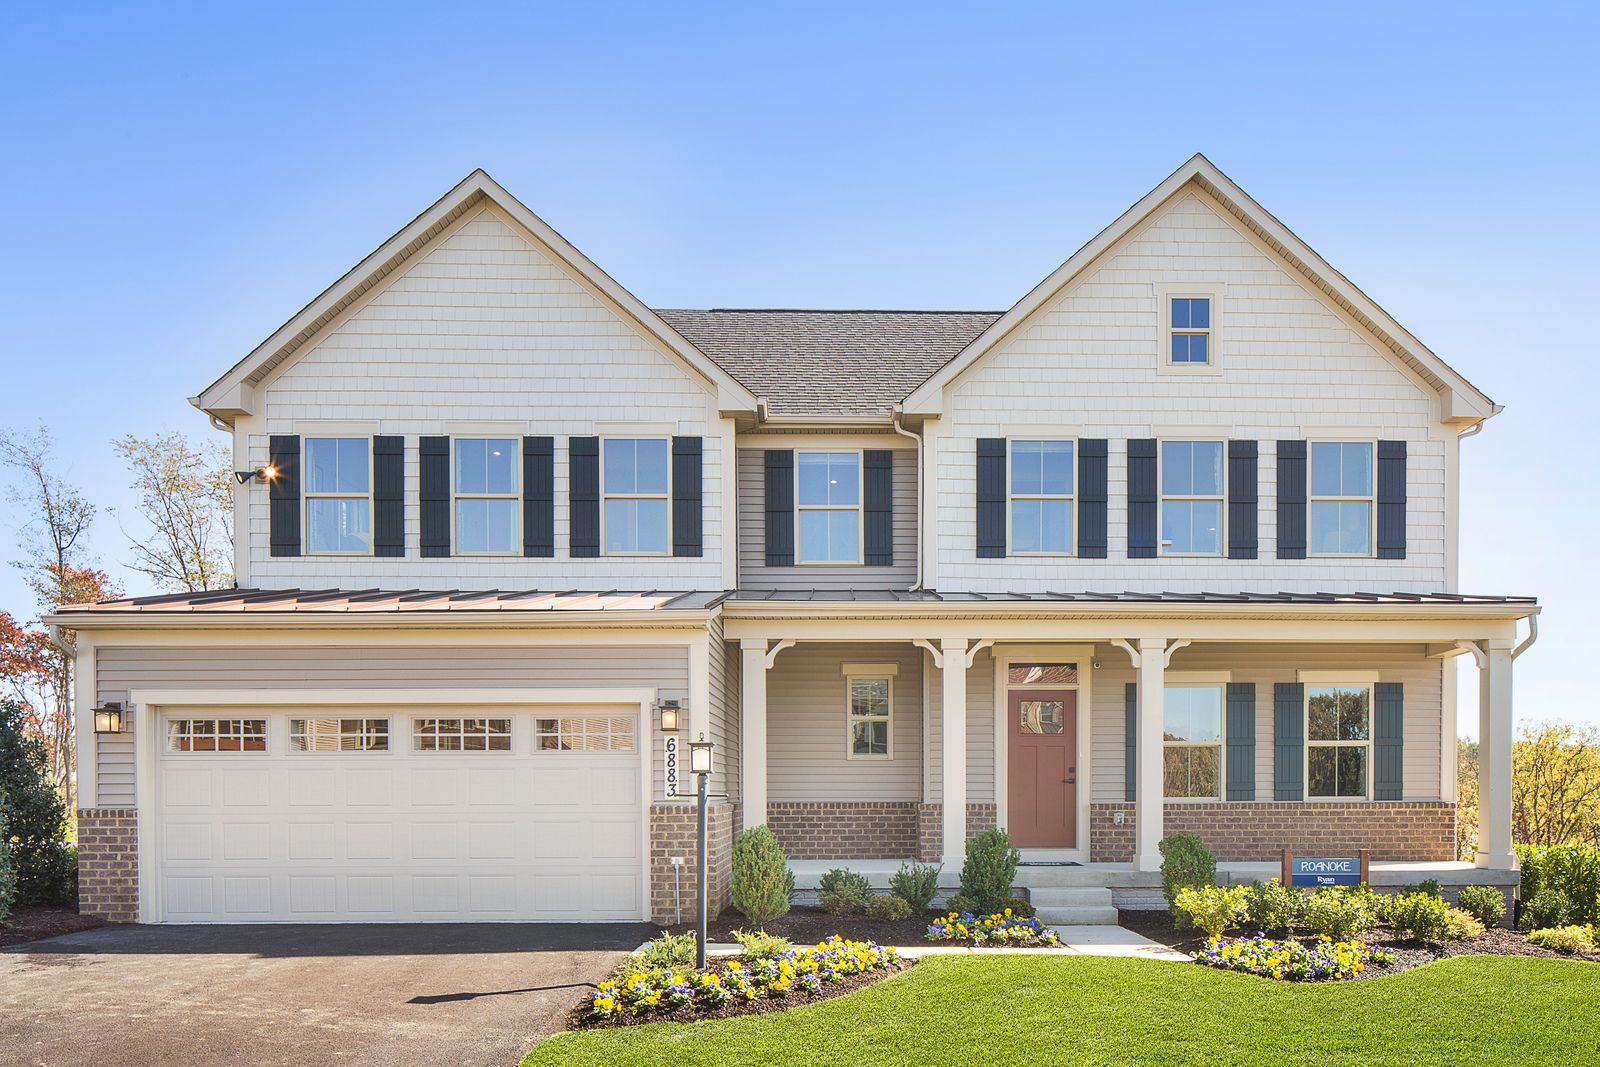 THREE RIVERS - FROM THE MID $400S:Spacious homesites in premium, amenity-filled community with 2-story and main level living options in a convenient Veteran's Parkway location.Schedule your in-person or virtual visit today!